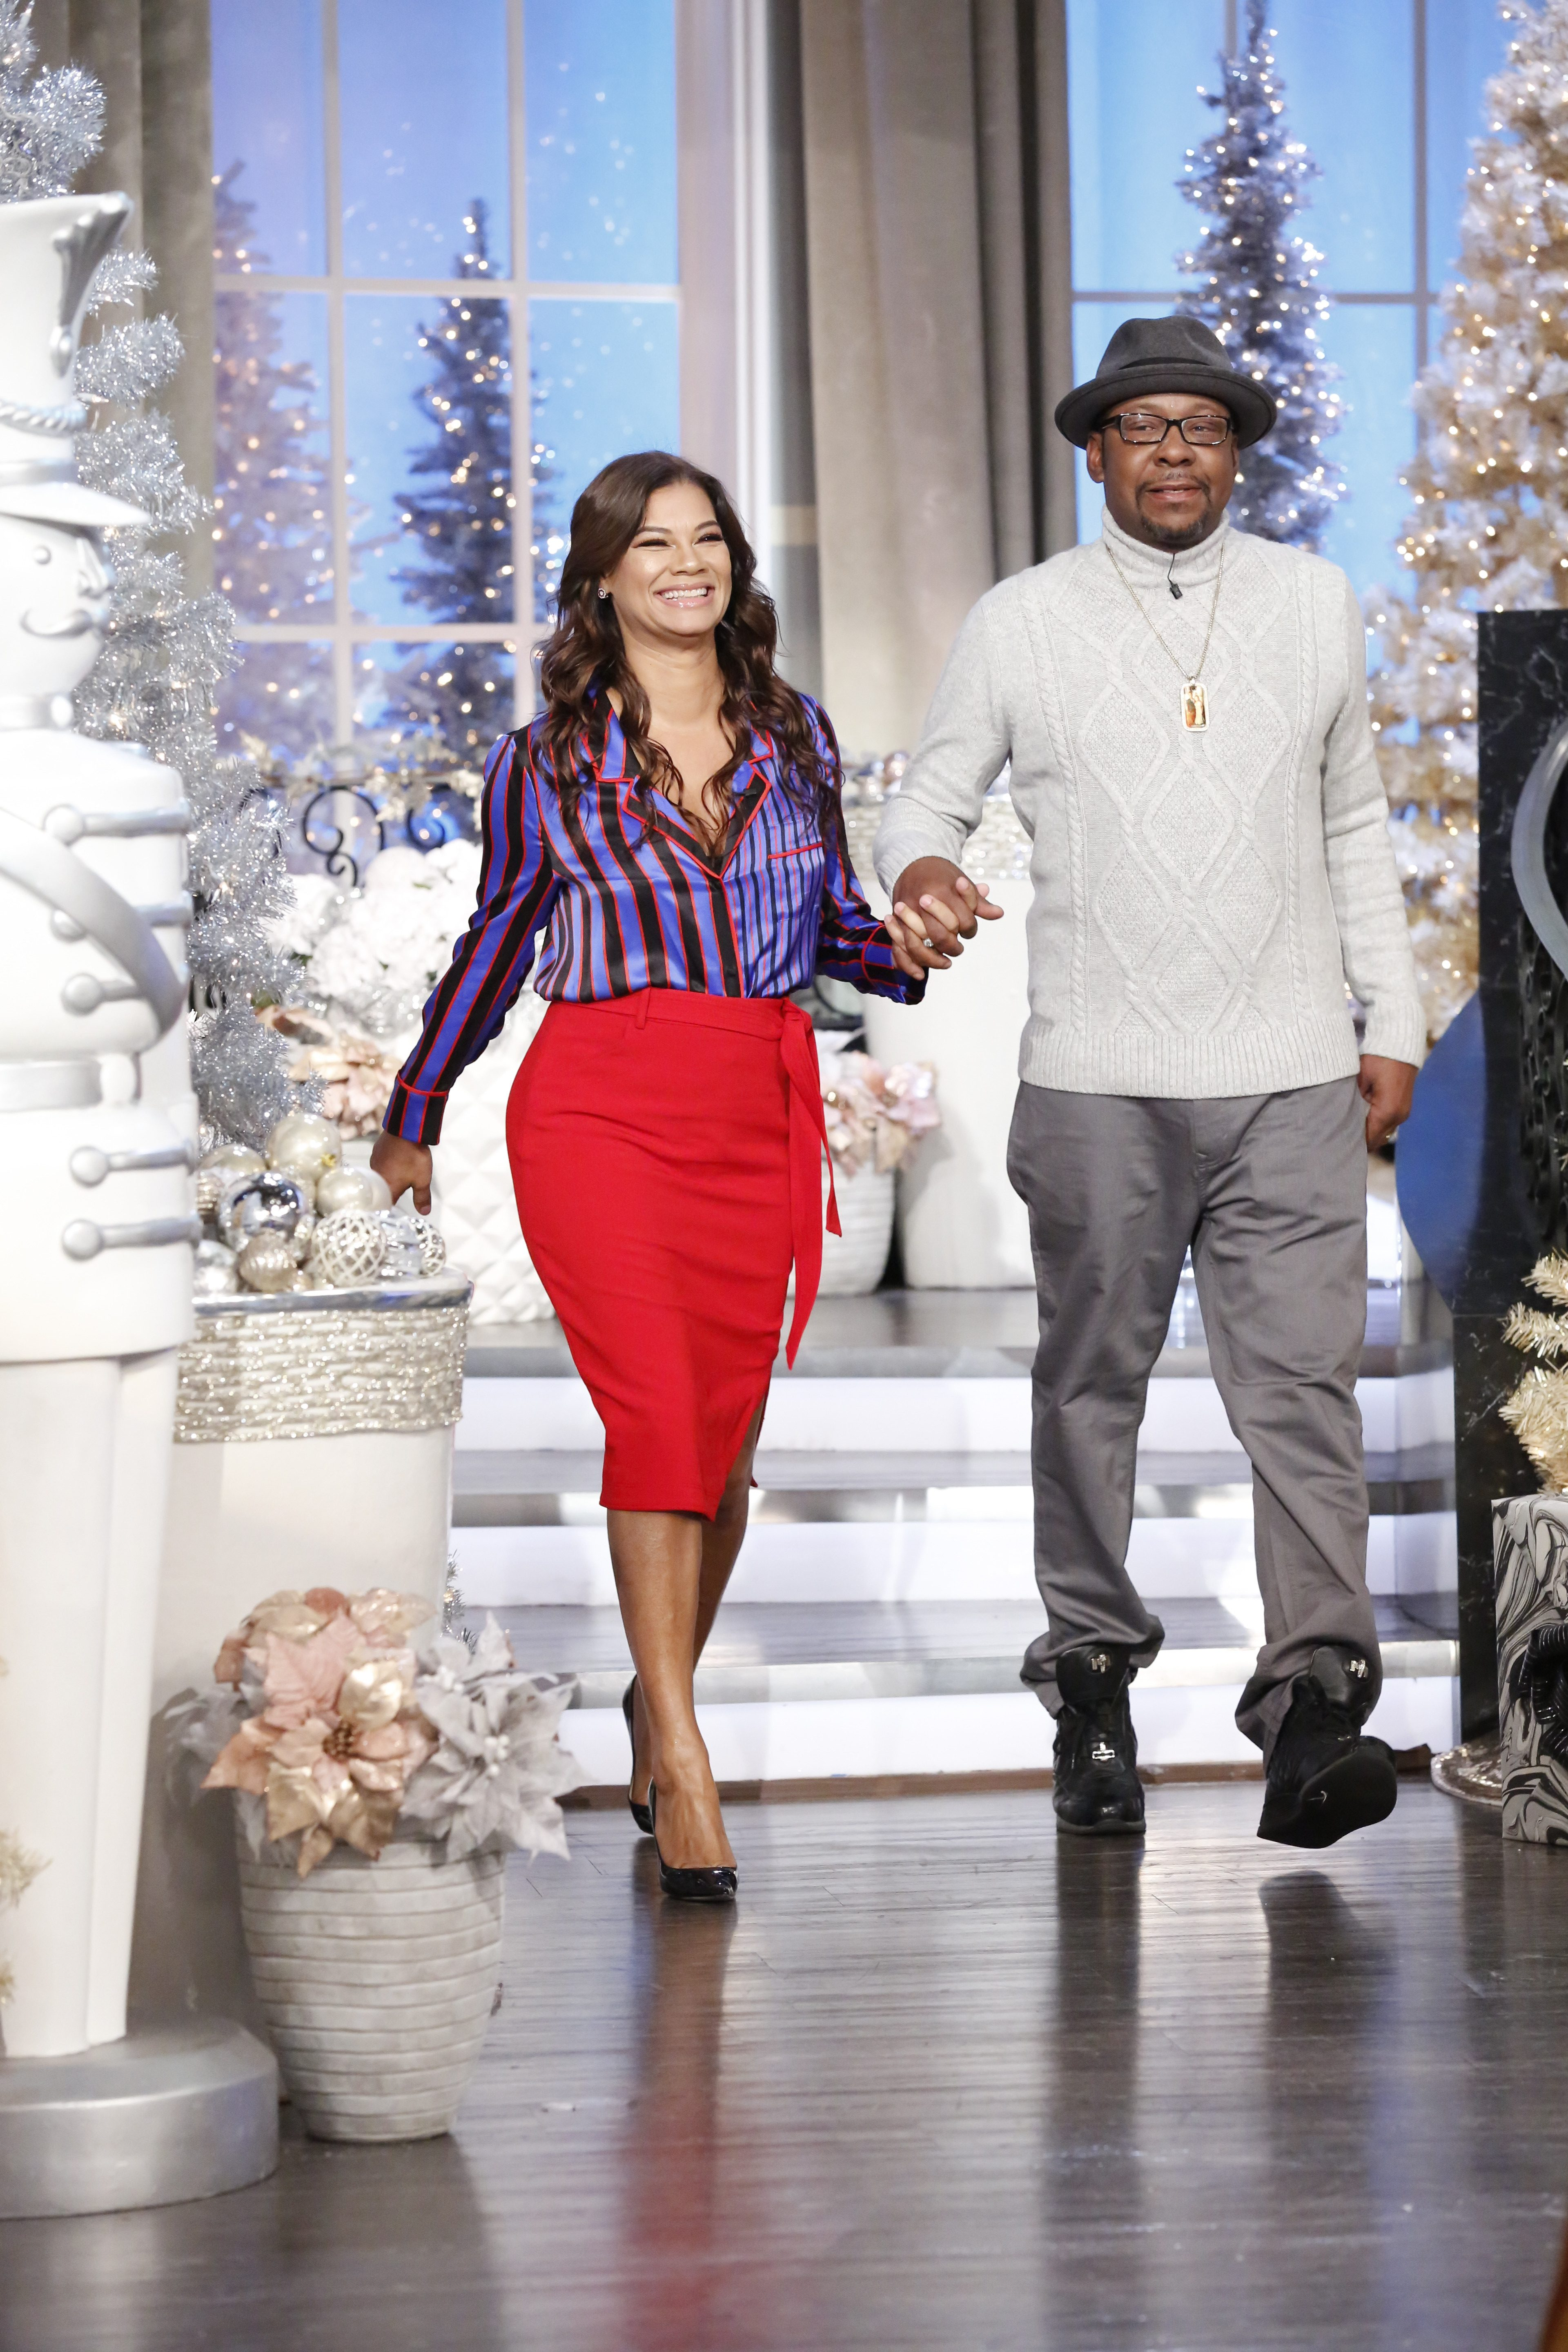 THE REAL's Holiday Episode With Bobby Brown And His Family!